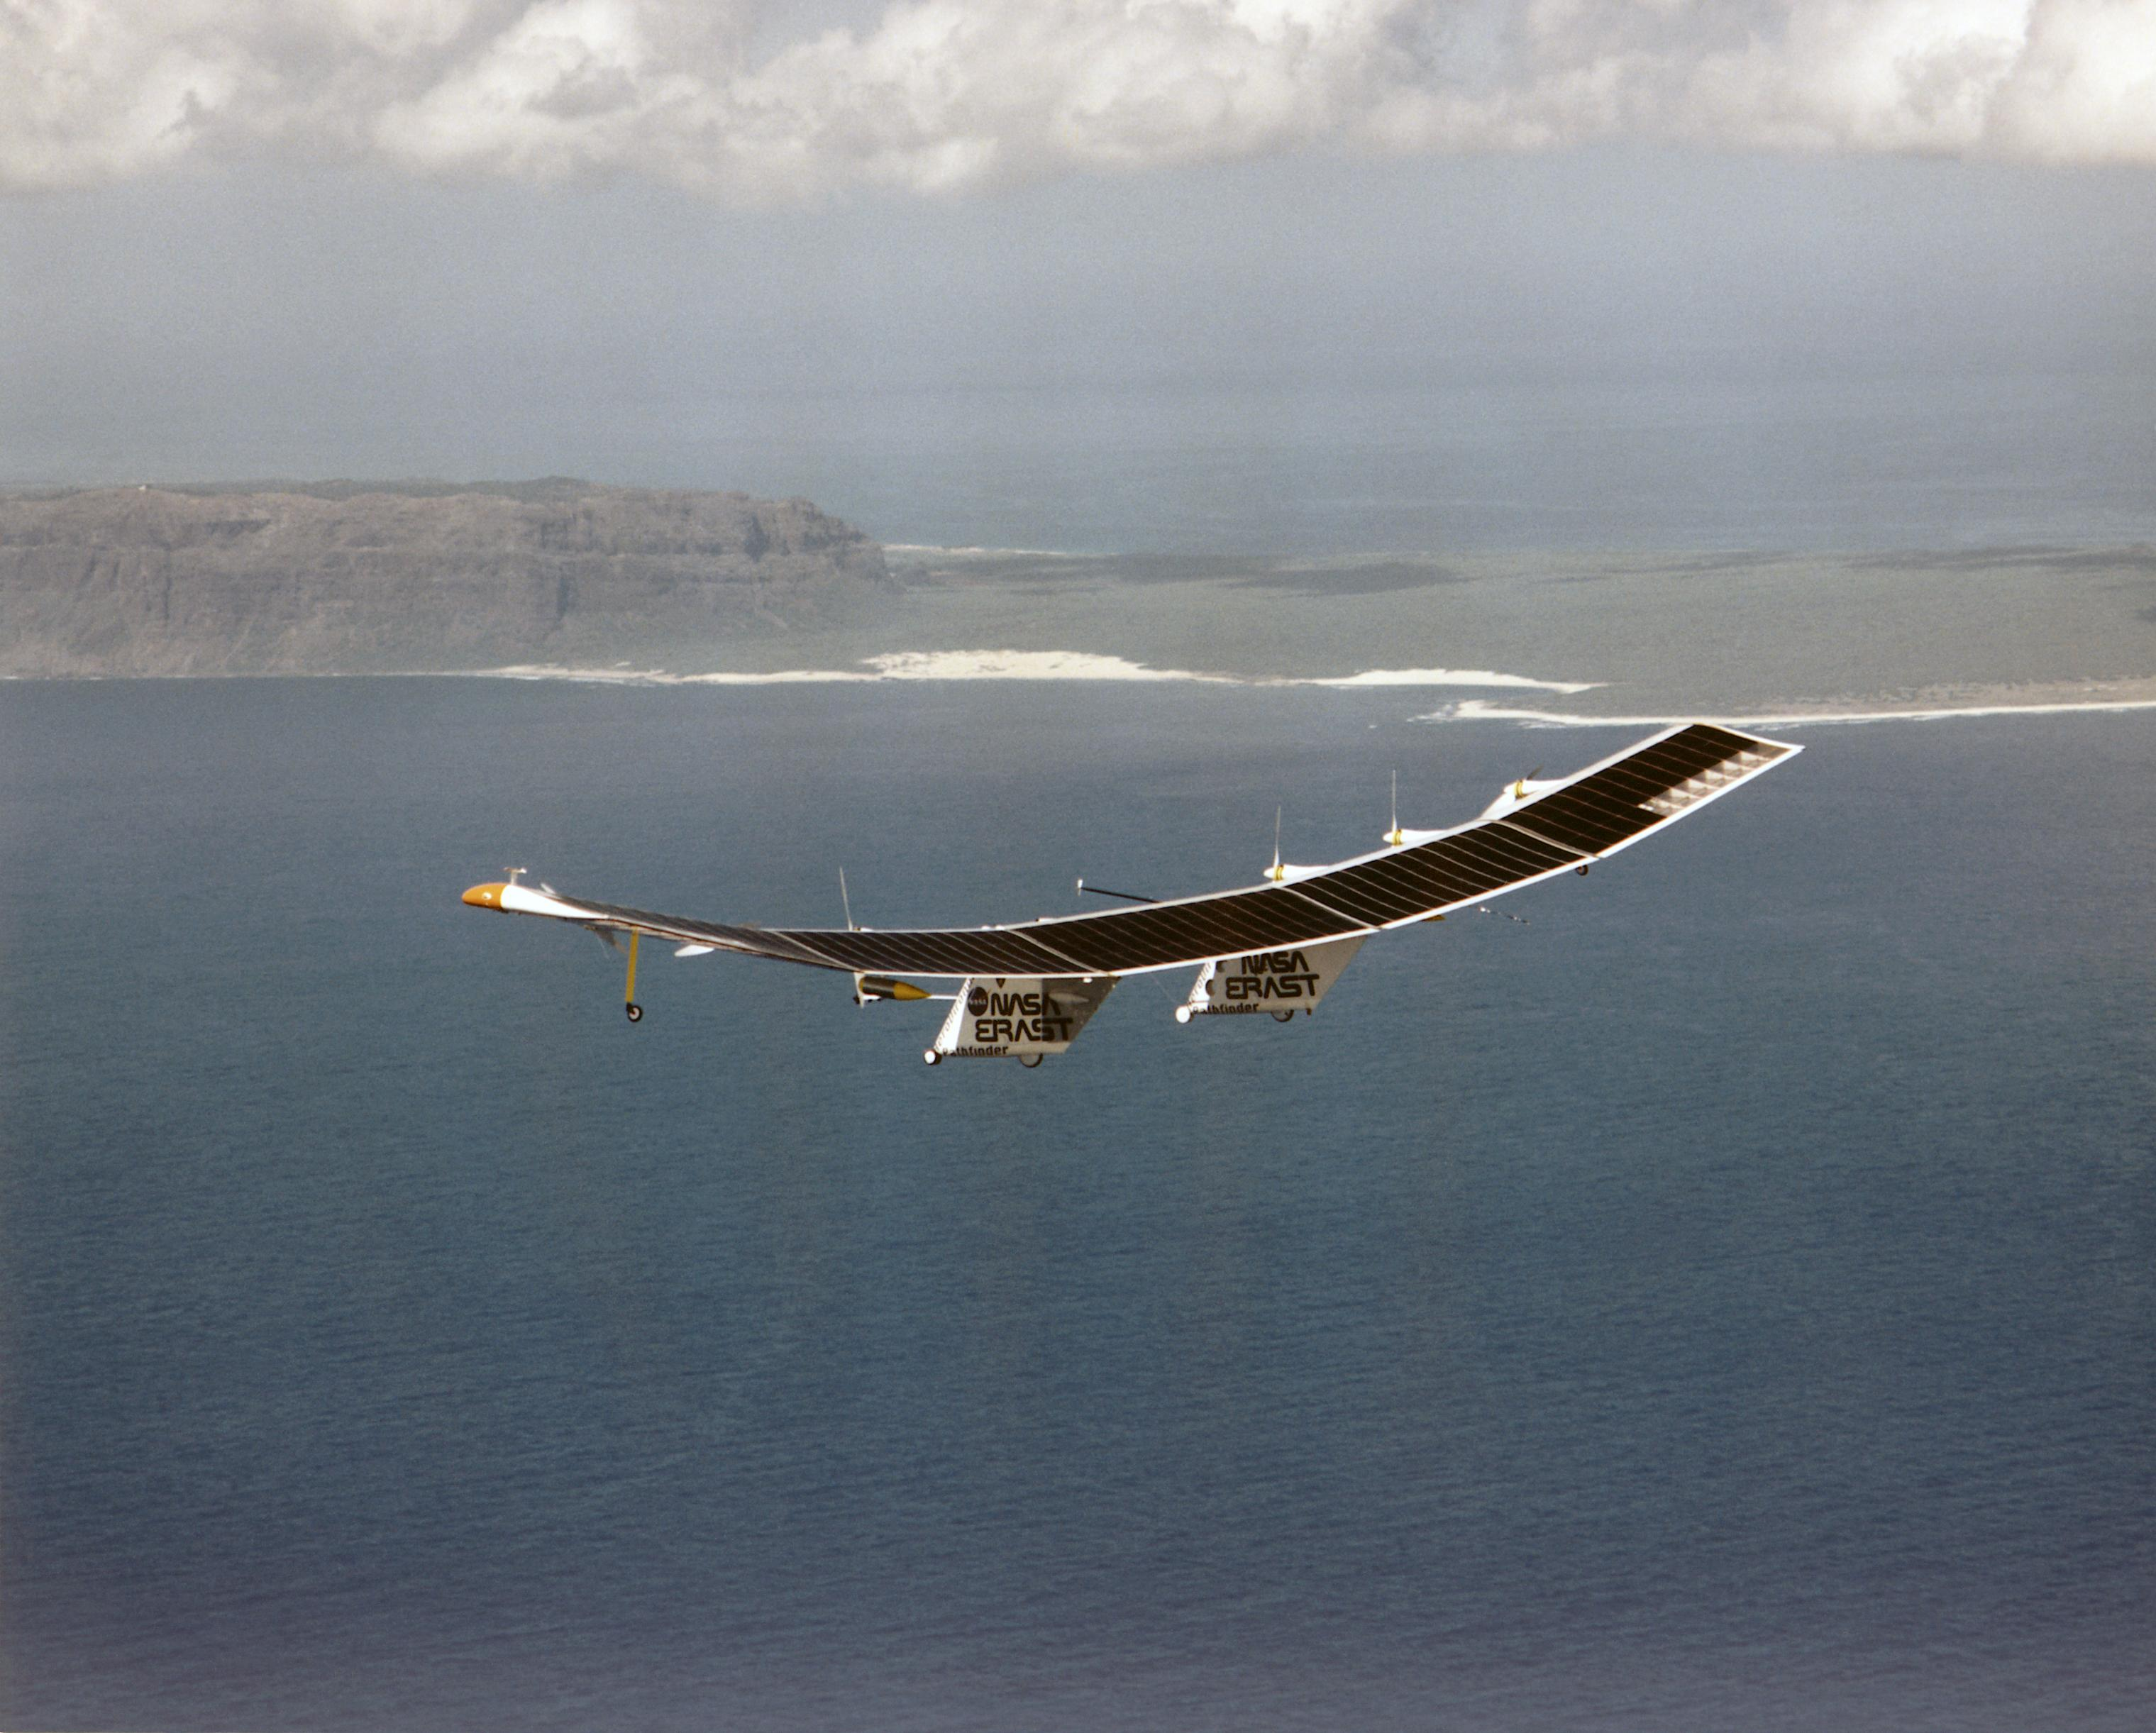 Pathfinder research Aircraft in Flight 8X12 PHOTOGRAPH NASA A